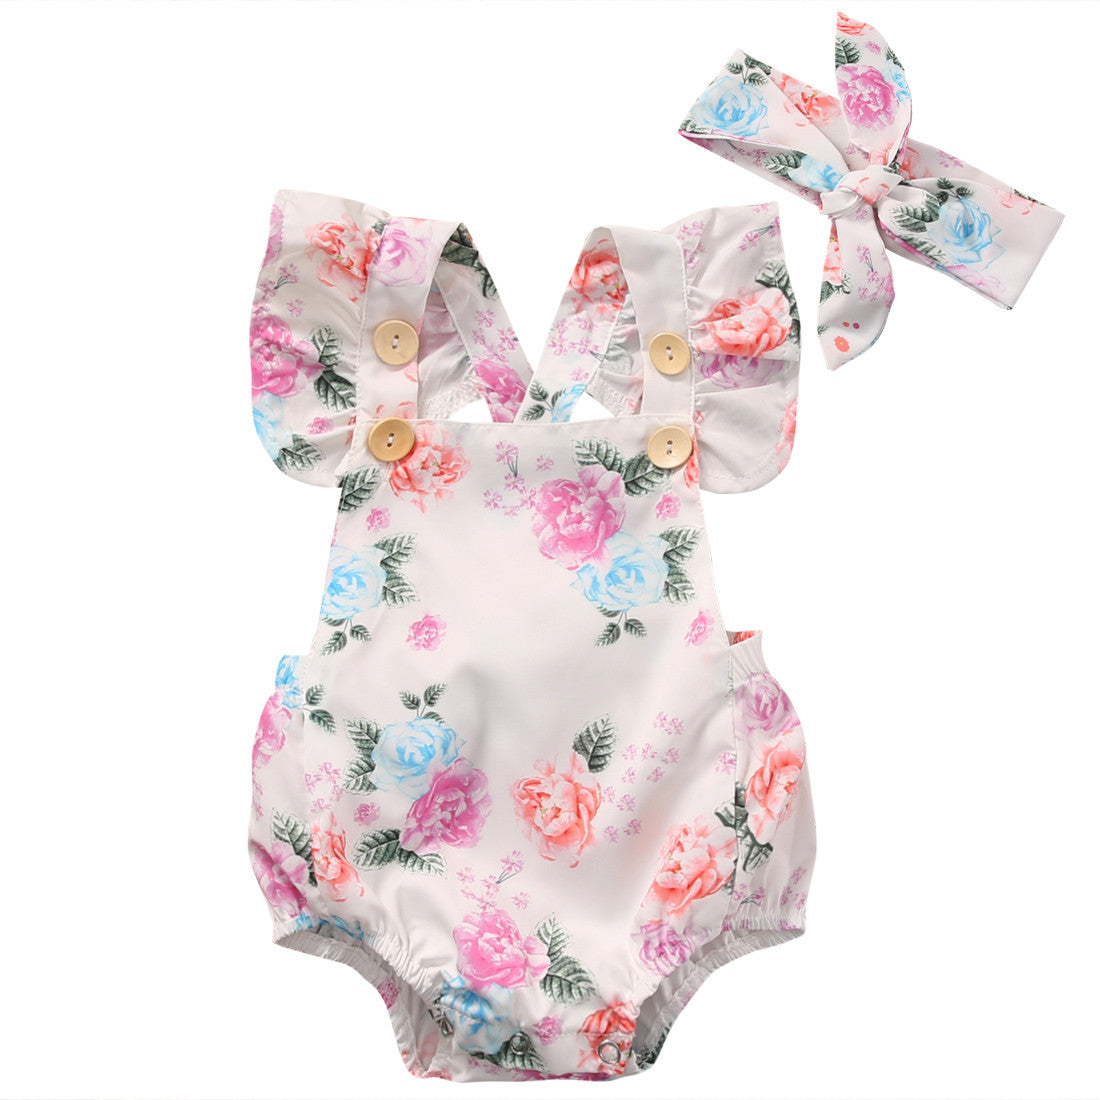 Adorable Floral Baby Romper 60 Off Favorite E Store